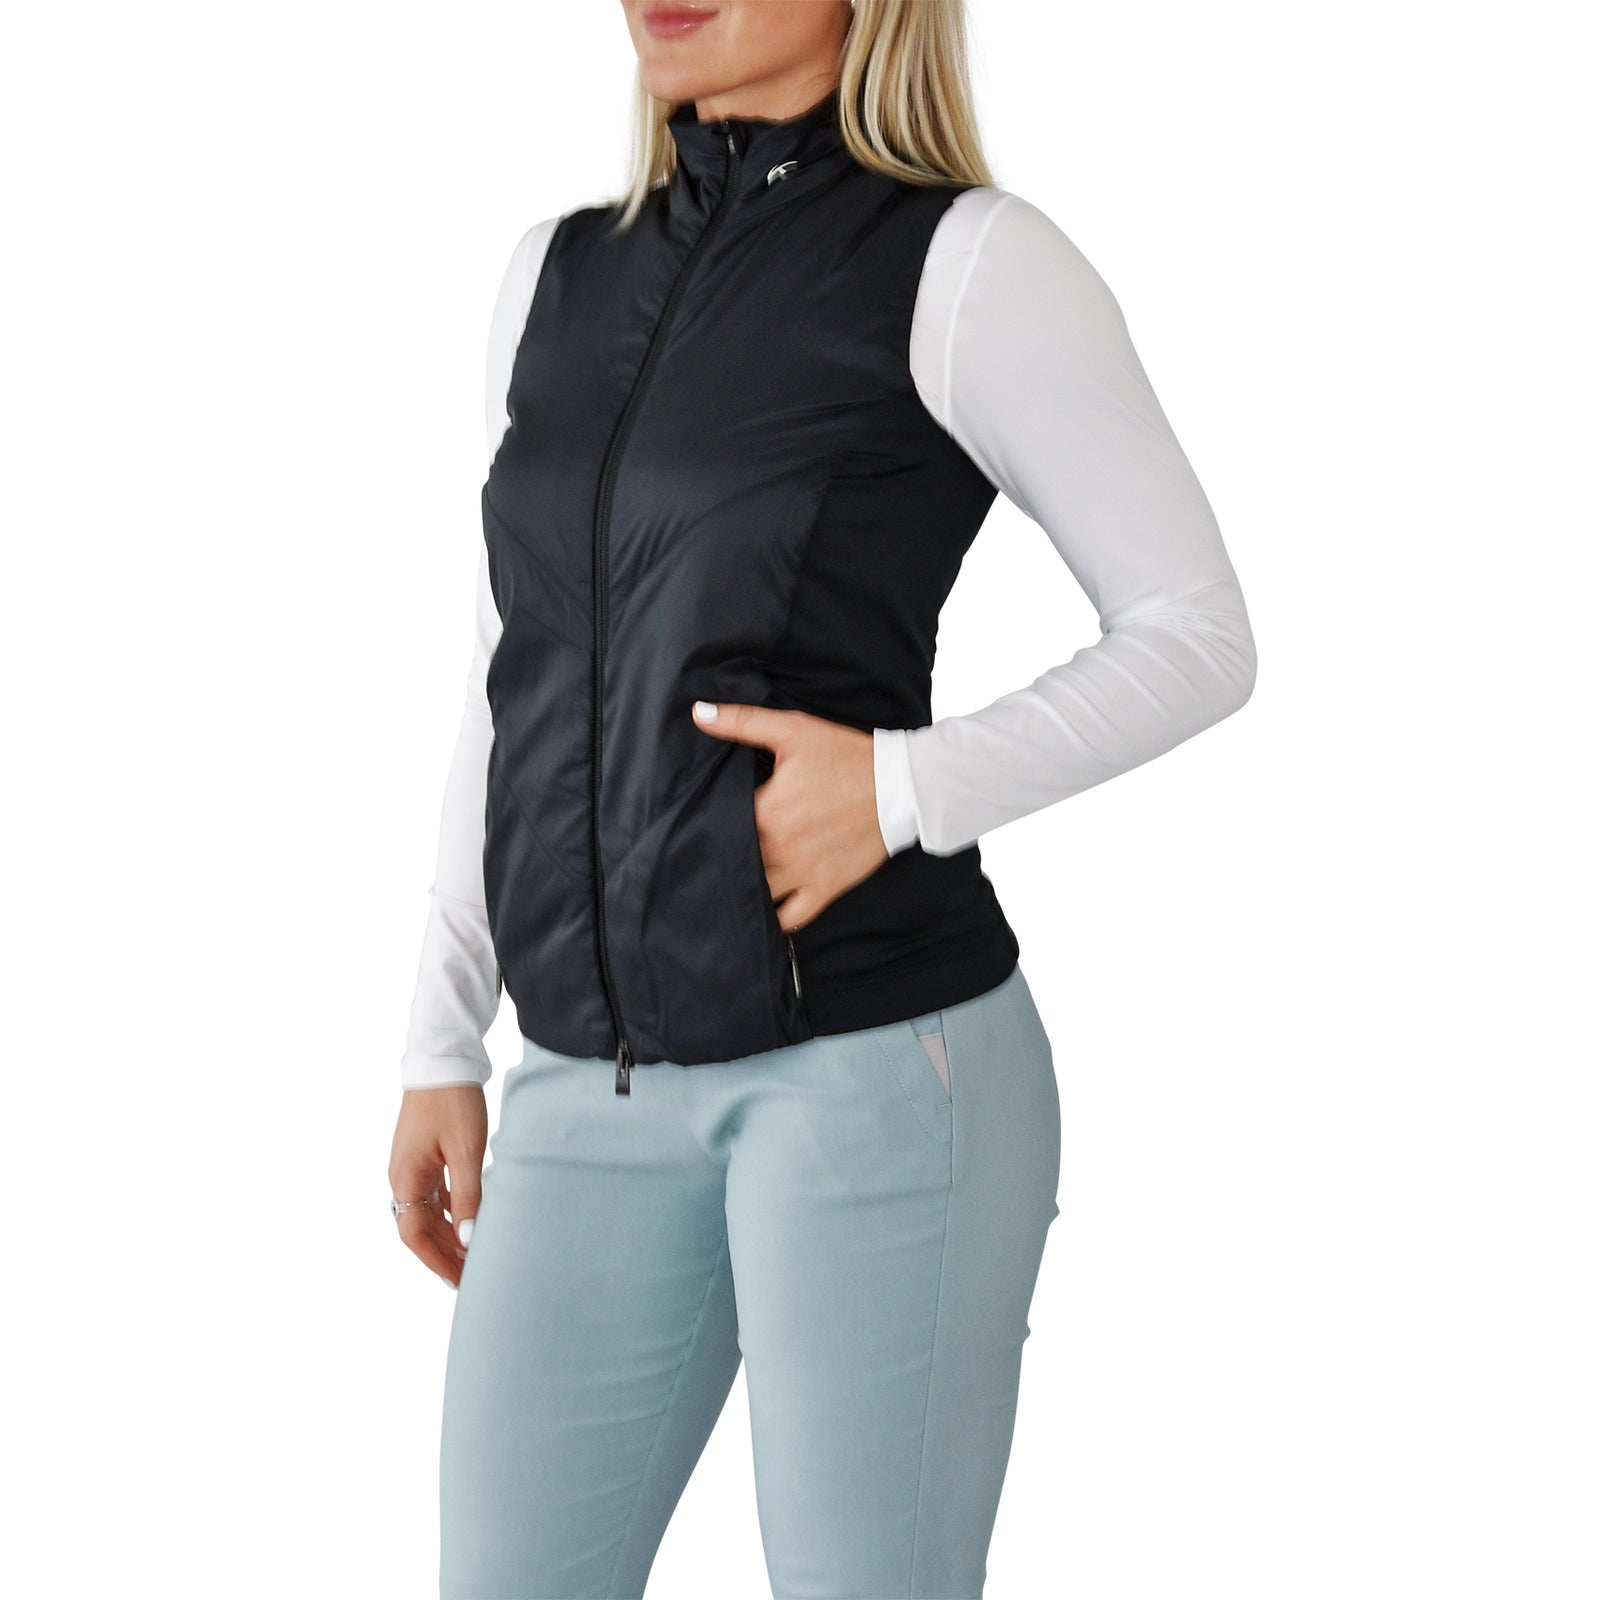 KJUS Women's Radiation Vest - Black